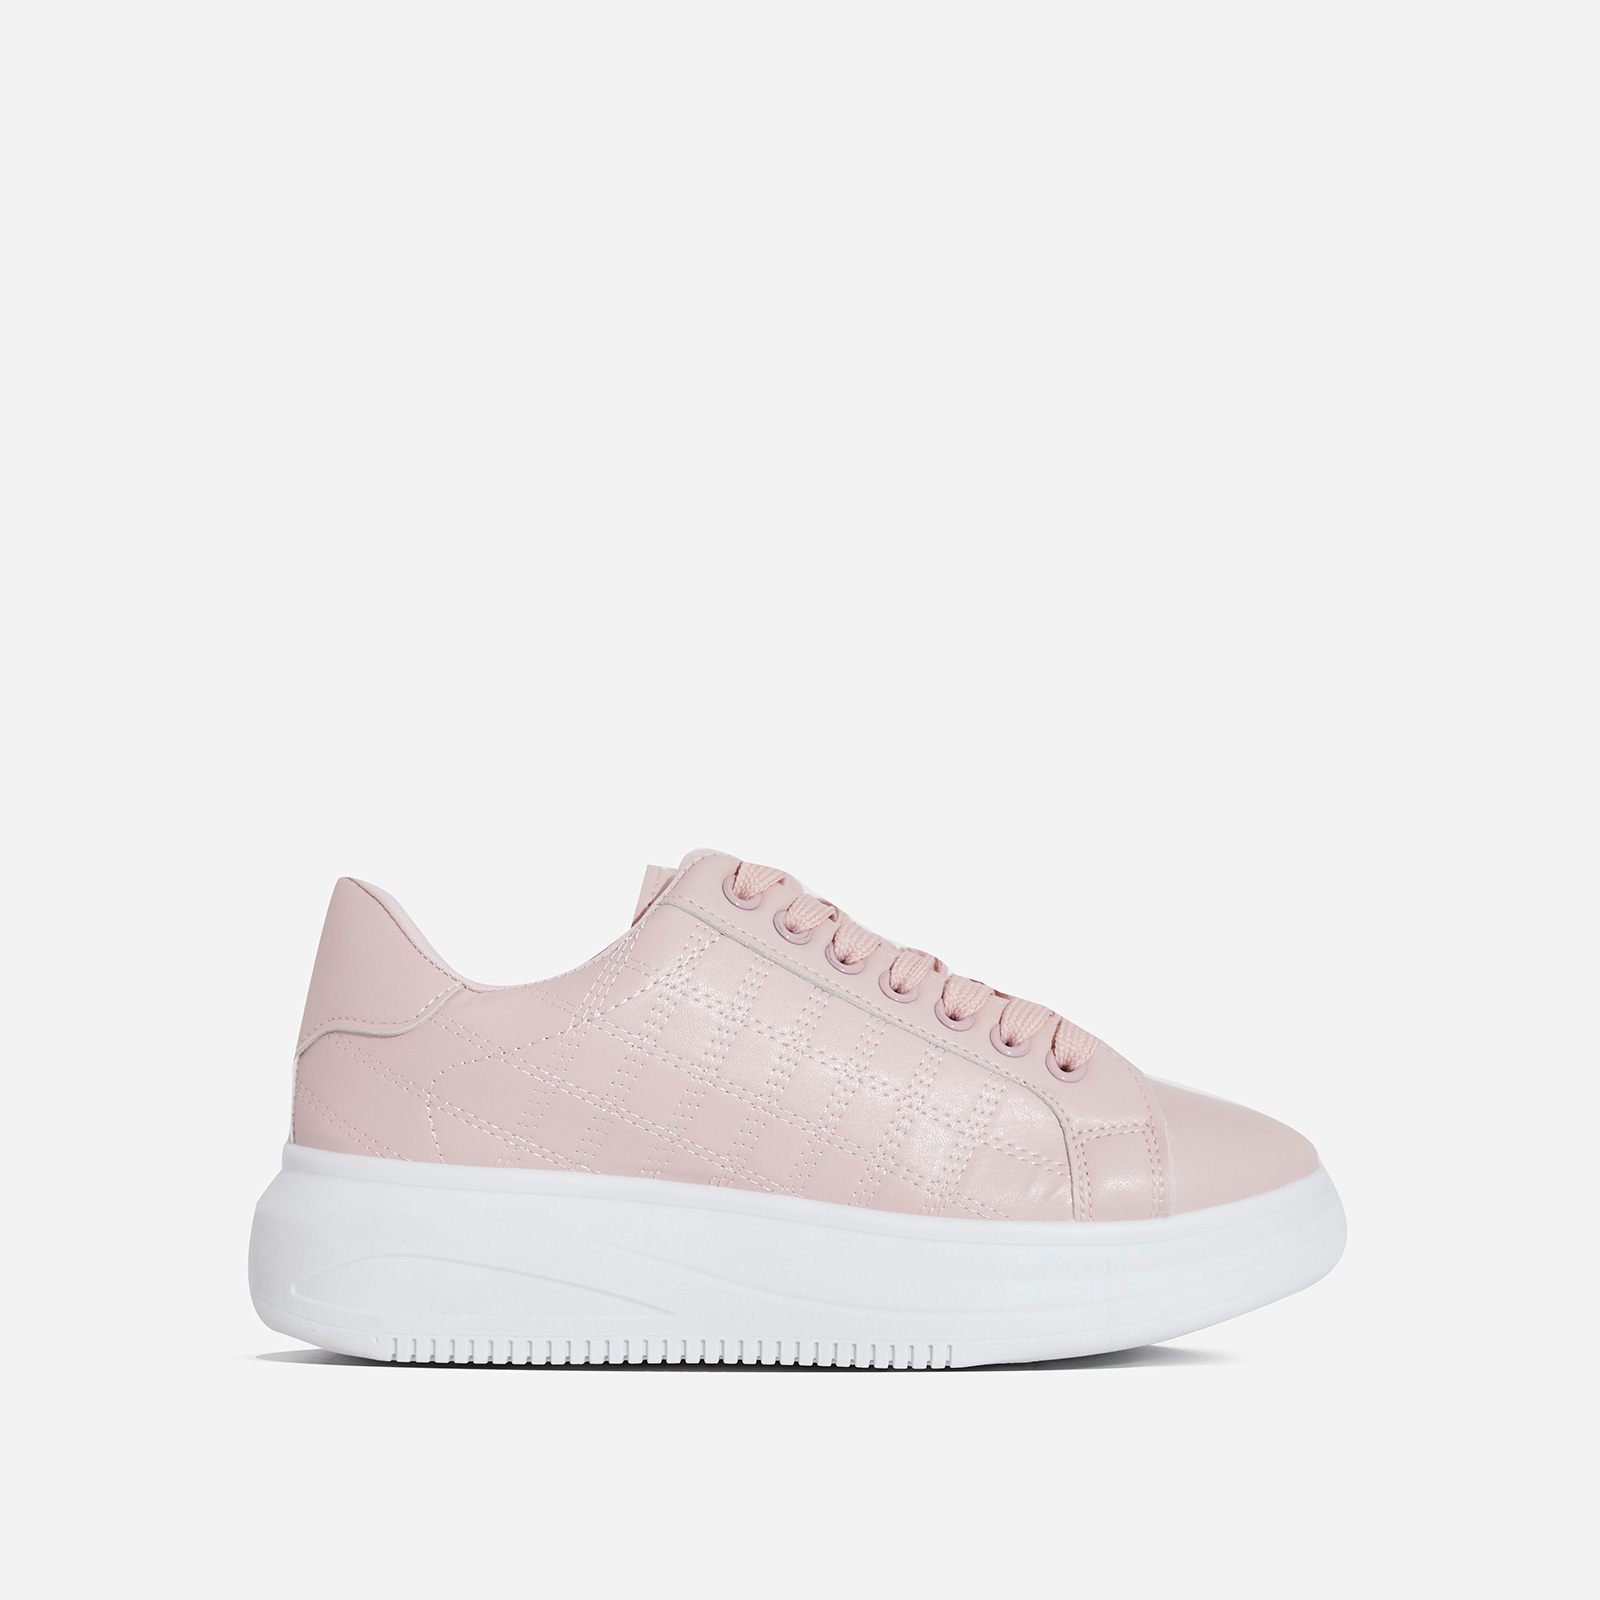 Avi Stitch Detail Chunky Sole Trainer In Pink Faux Leather